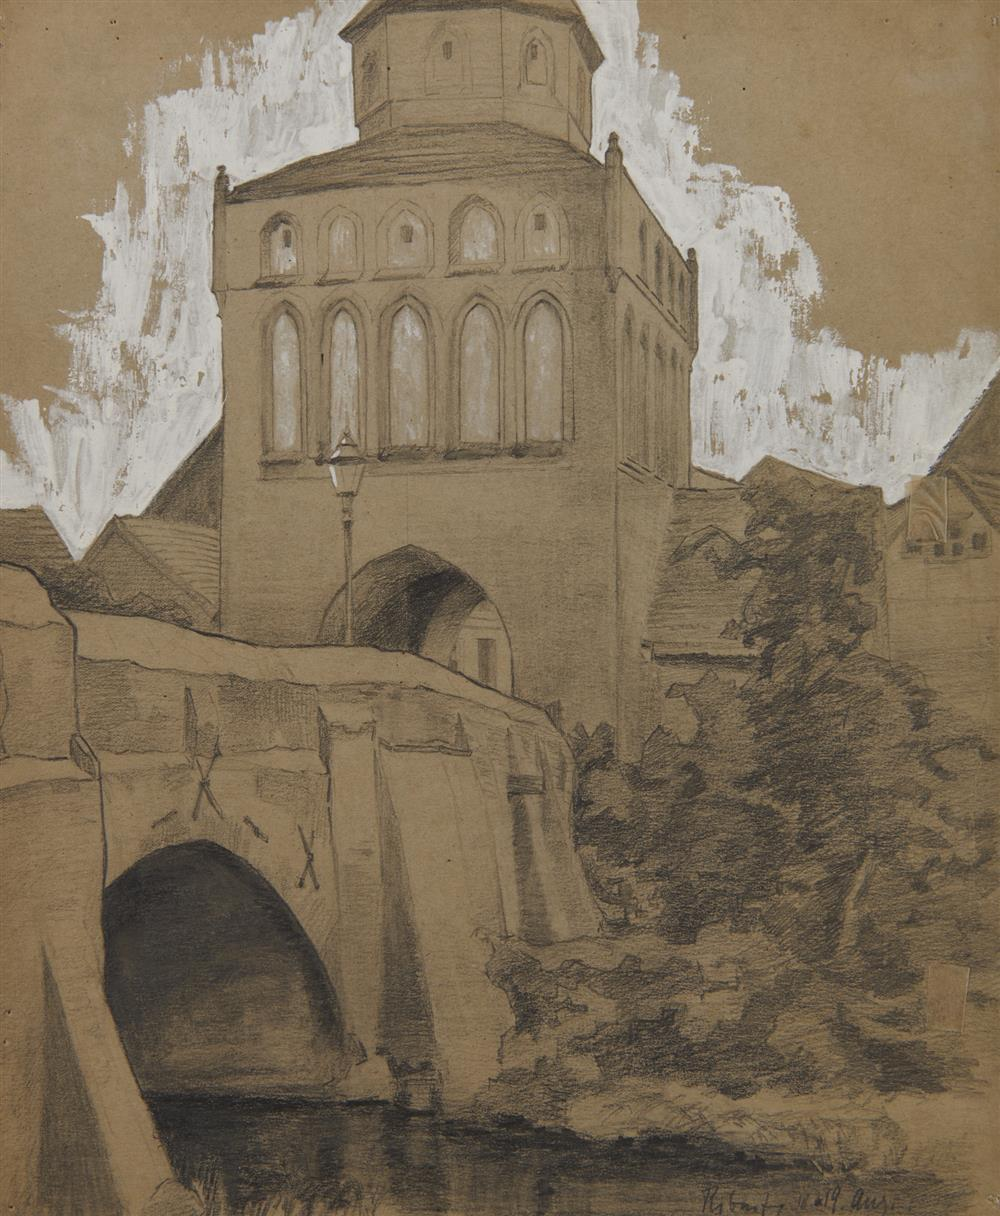 LYONEL FEININGER, (American/German, 1871-1956), Untitled (Ribnitz Town Gate), pencil heightened with white, 13 1/2 x 10 7/8 in.